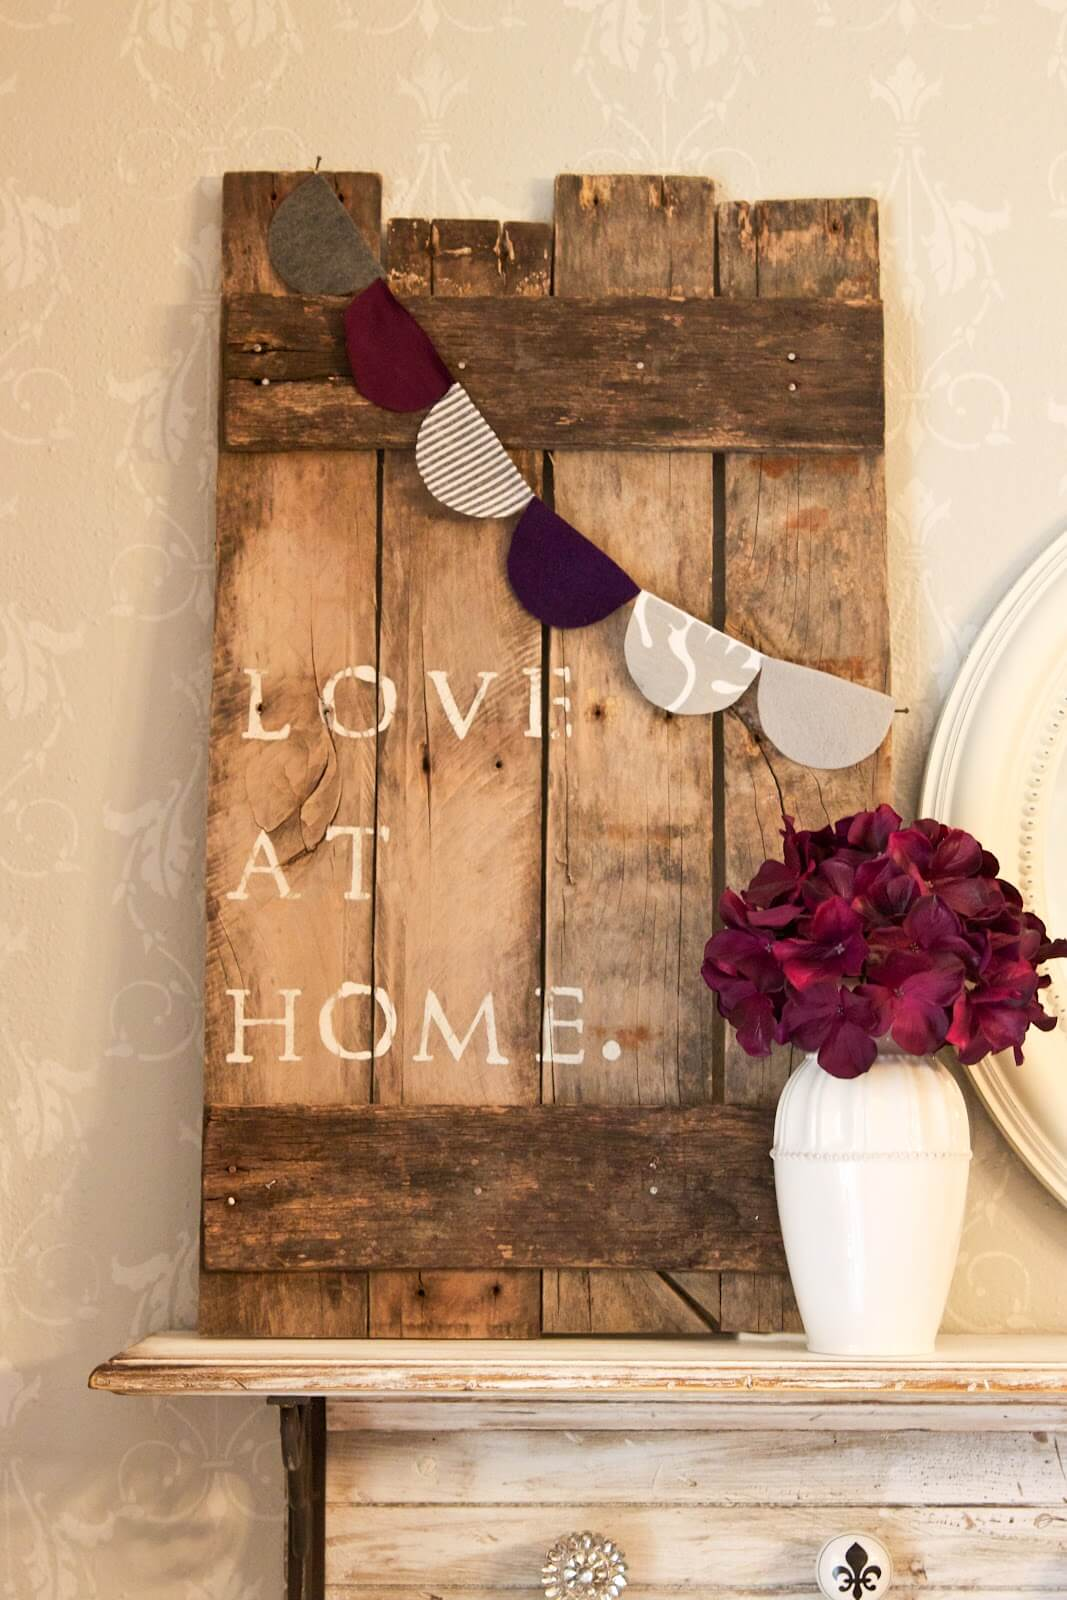 Love at Home Pallet Art